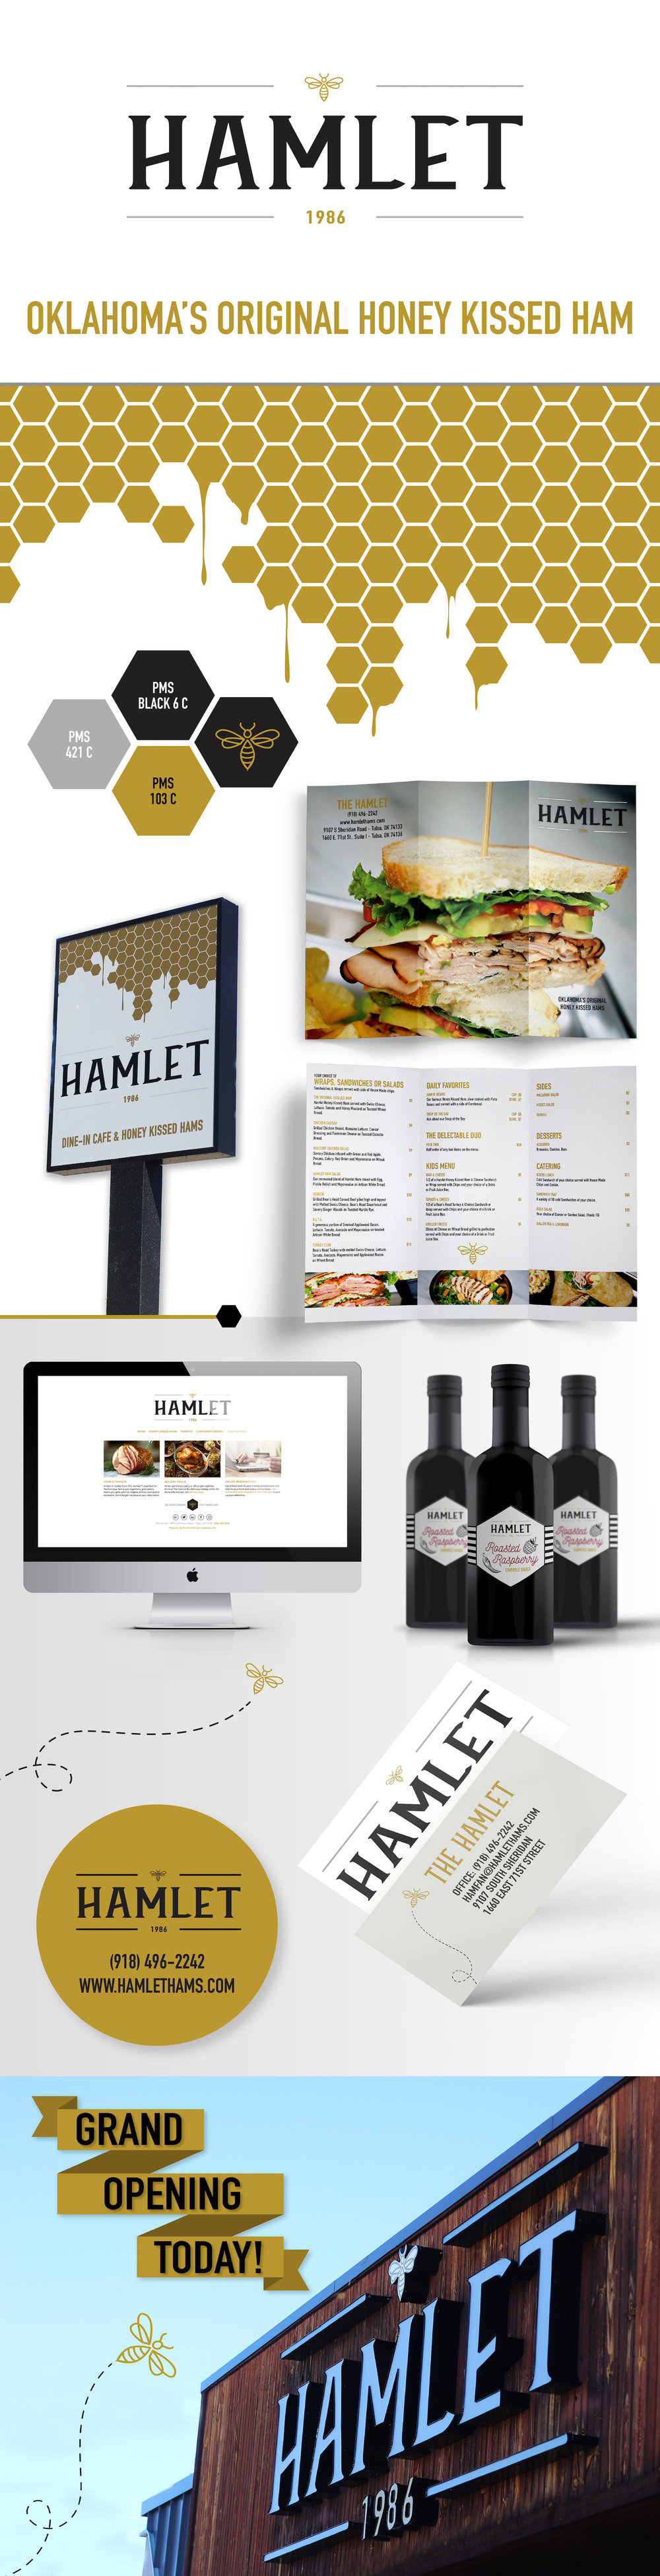 Hamlet - Chatter Marketing